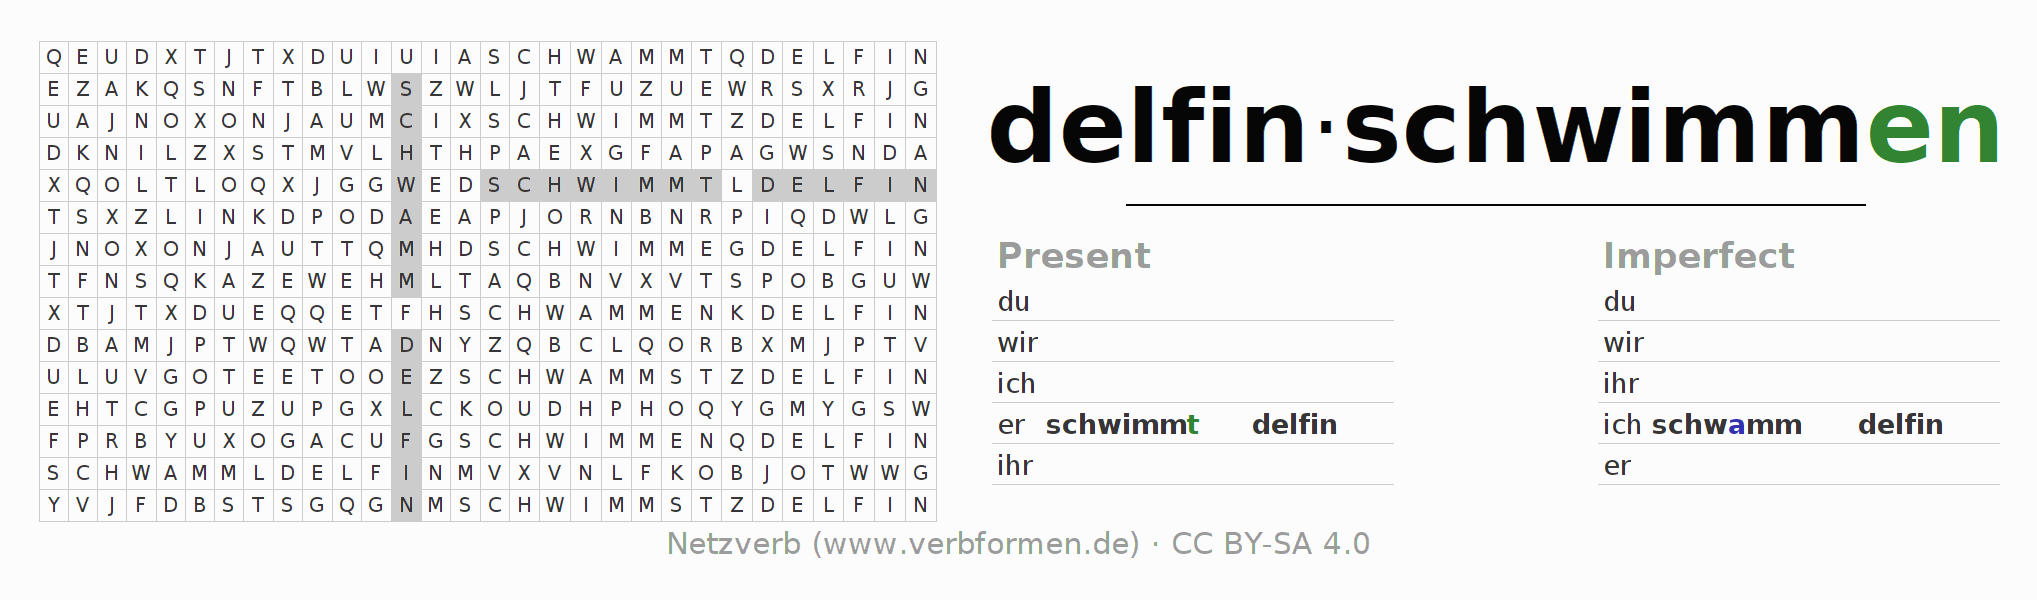 Word search puzzle for the conjugation of the verb delfinschwimmen (ist)